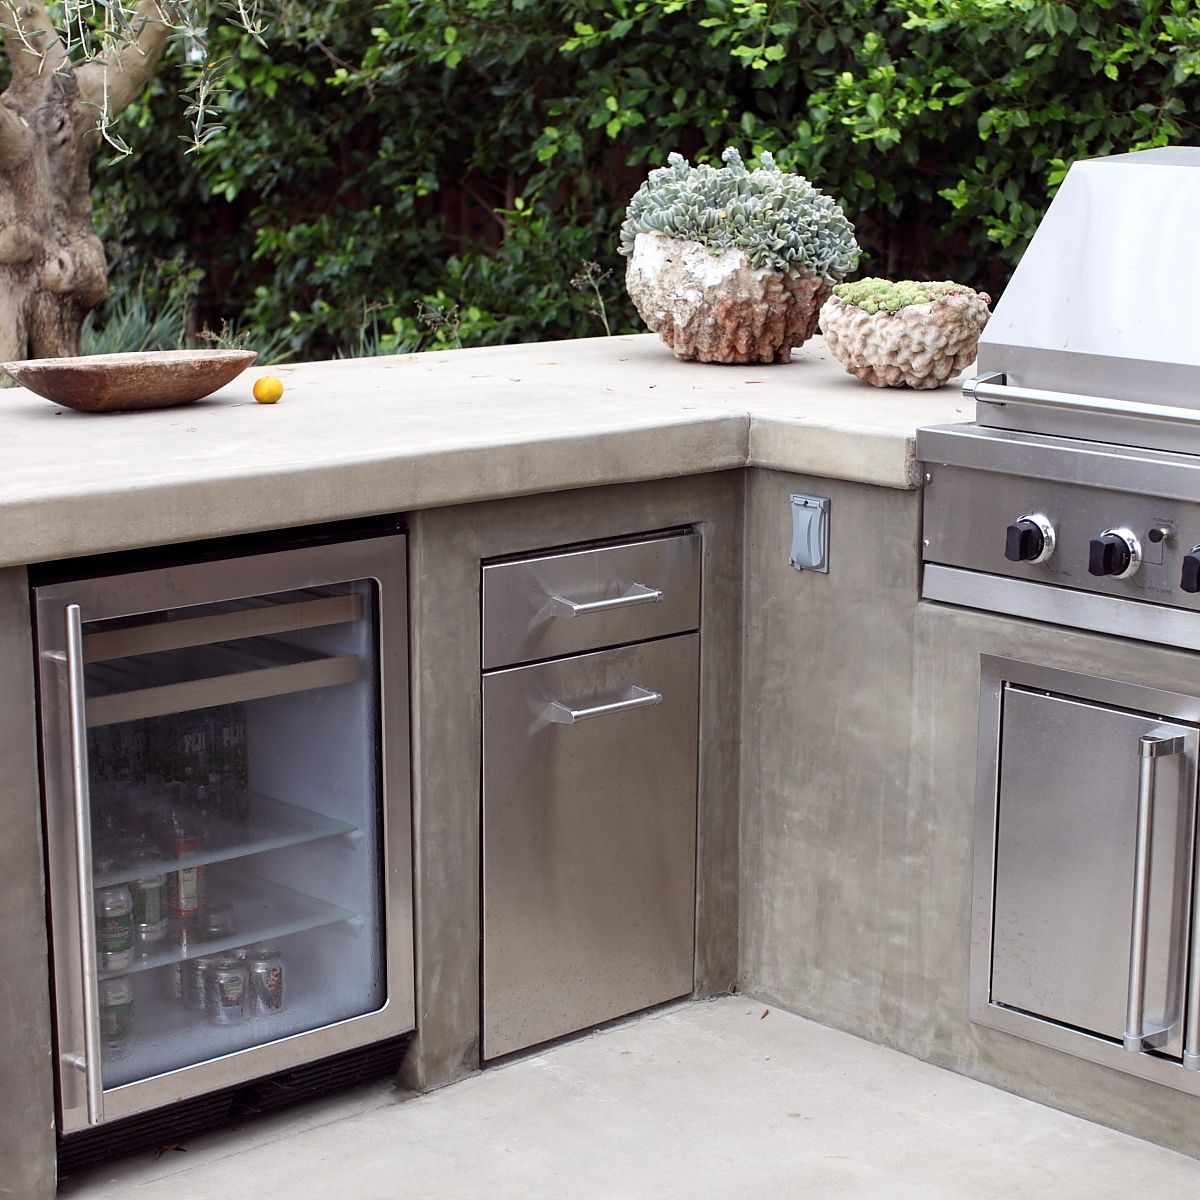 Contemporary Outdoor Kitchen: An Outdoor Fridge Is An Essential For A High End Built In